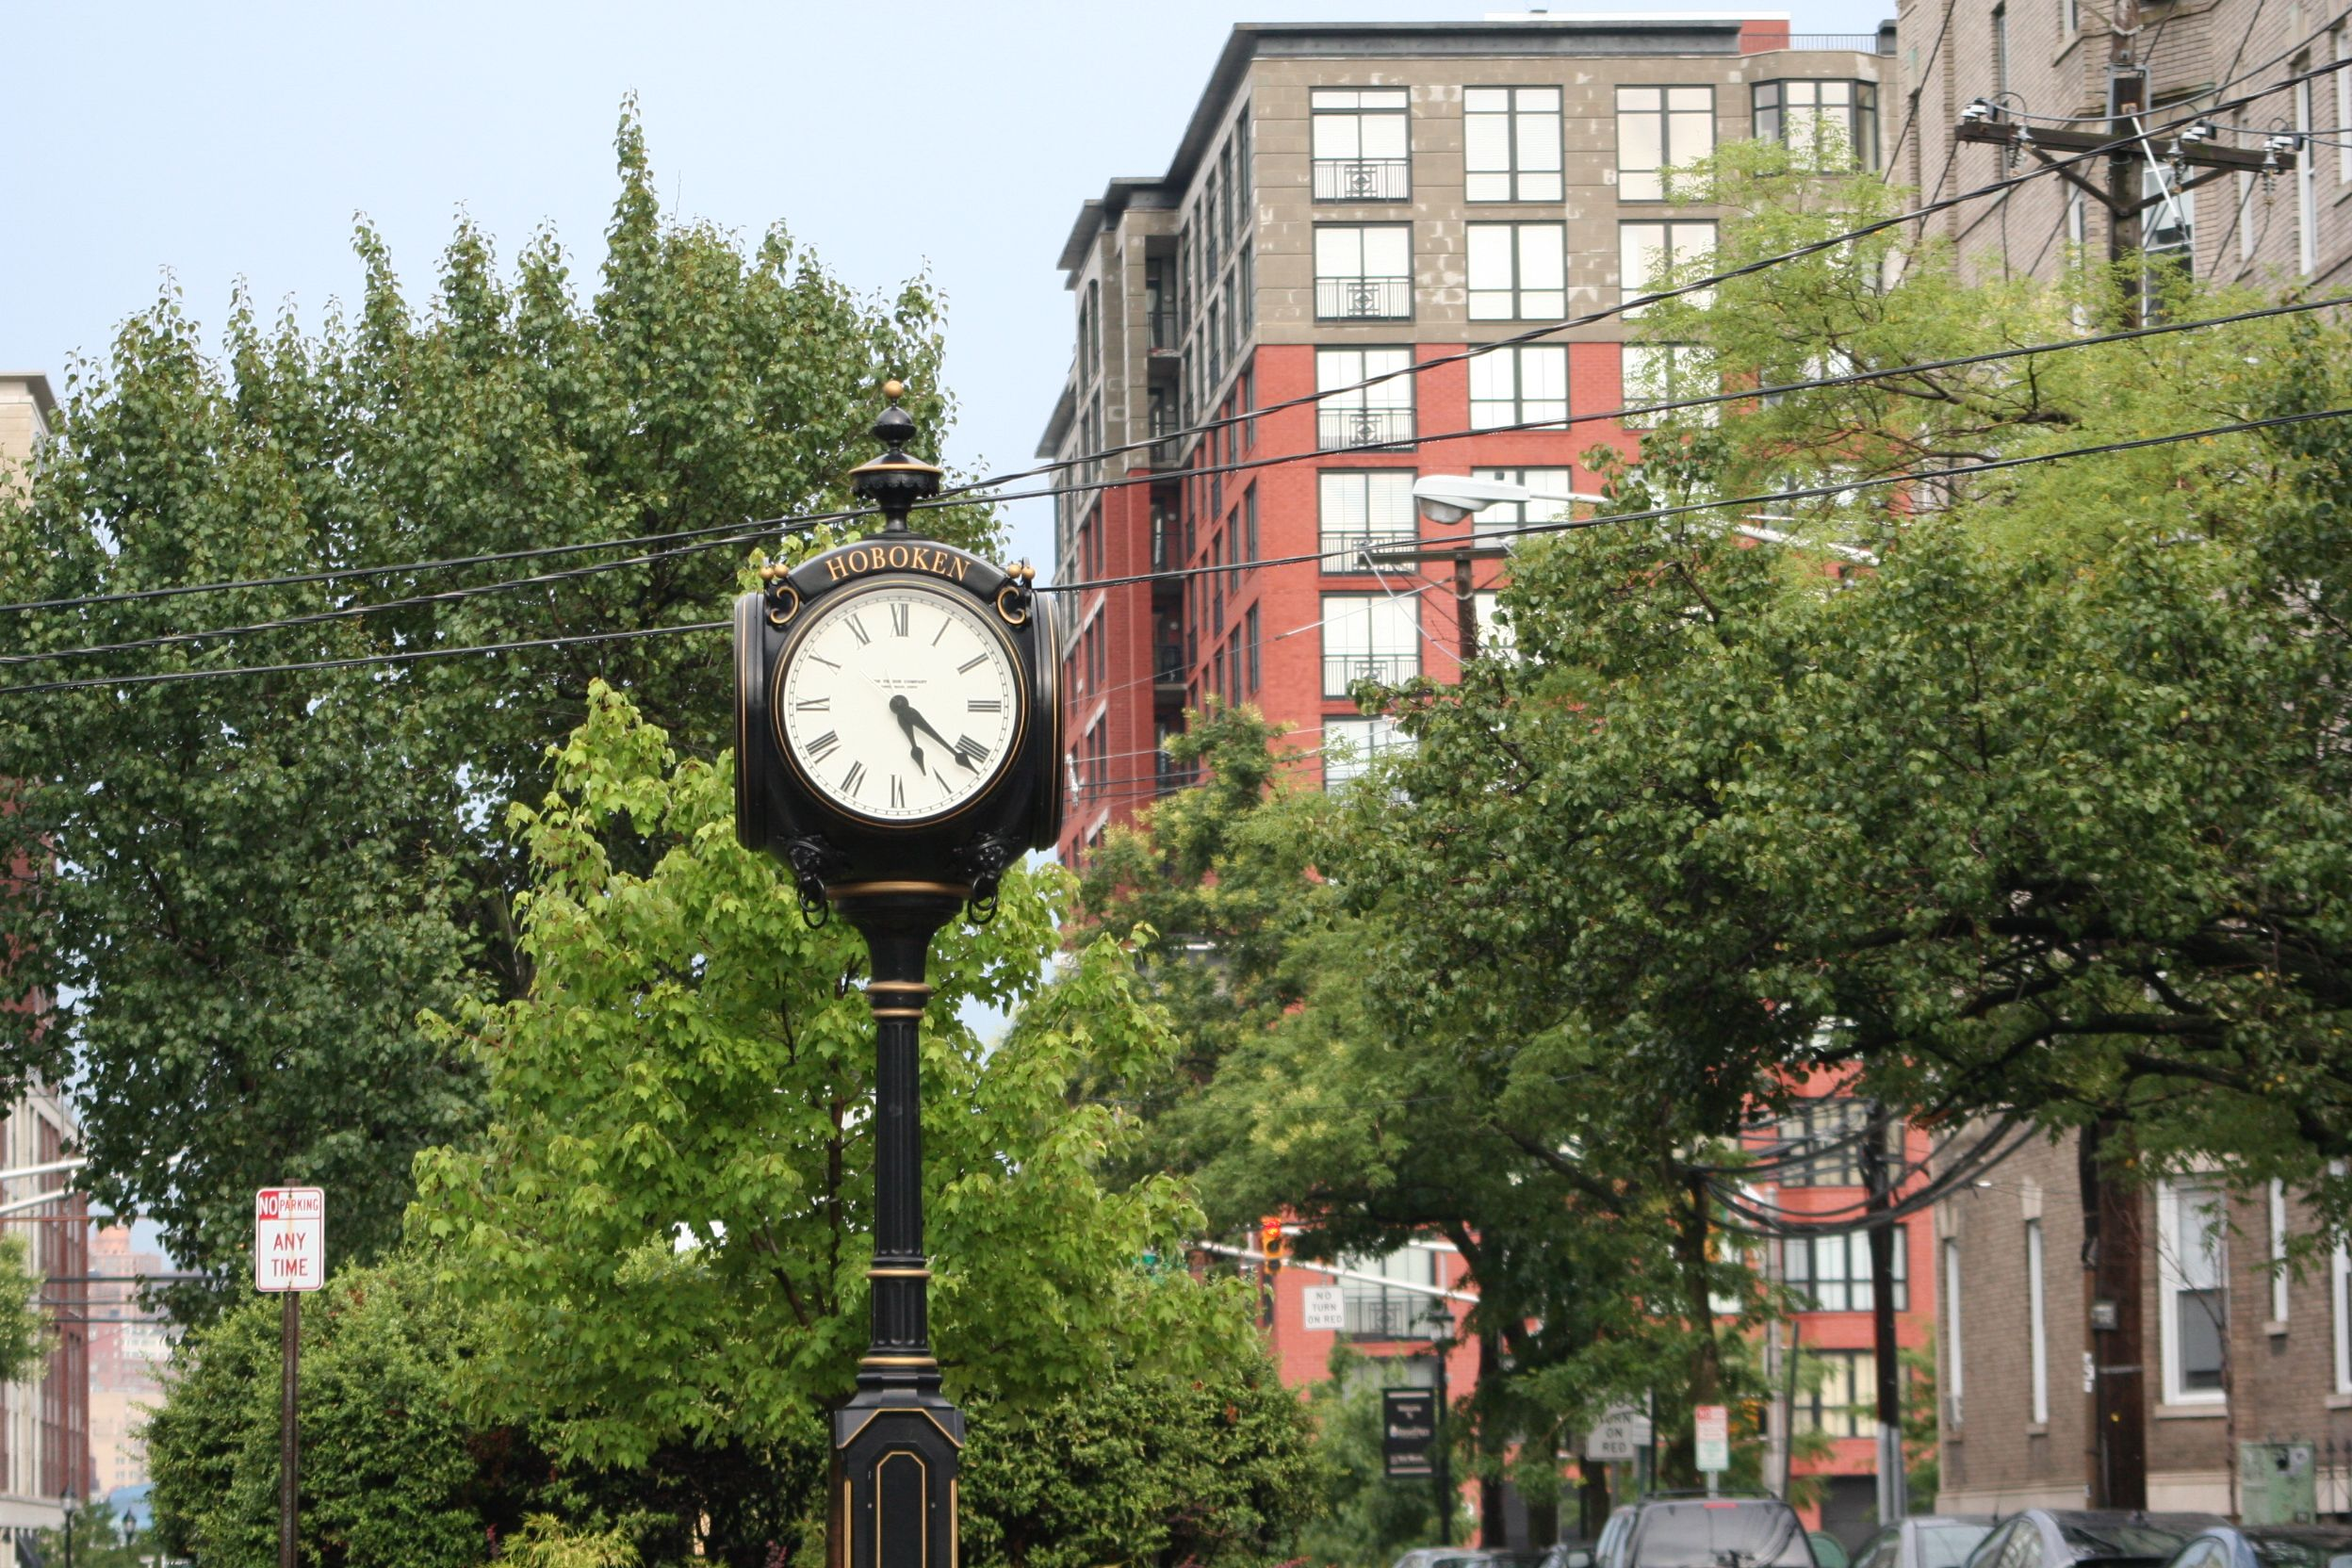 Hoboken, New Jersey love it and miss it